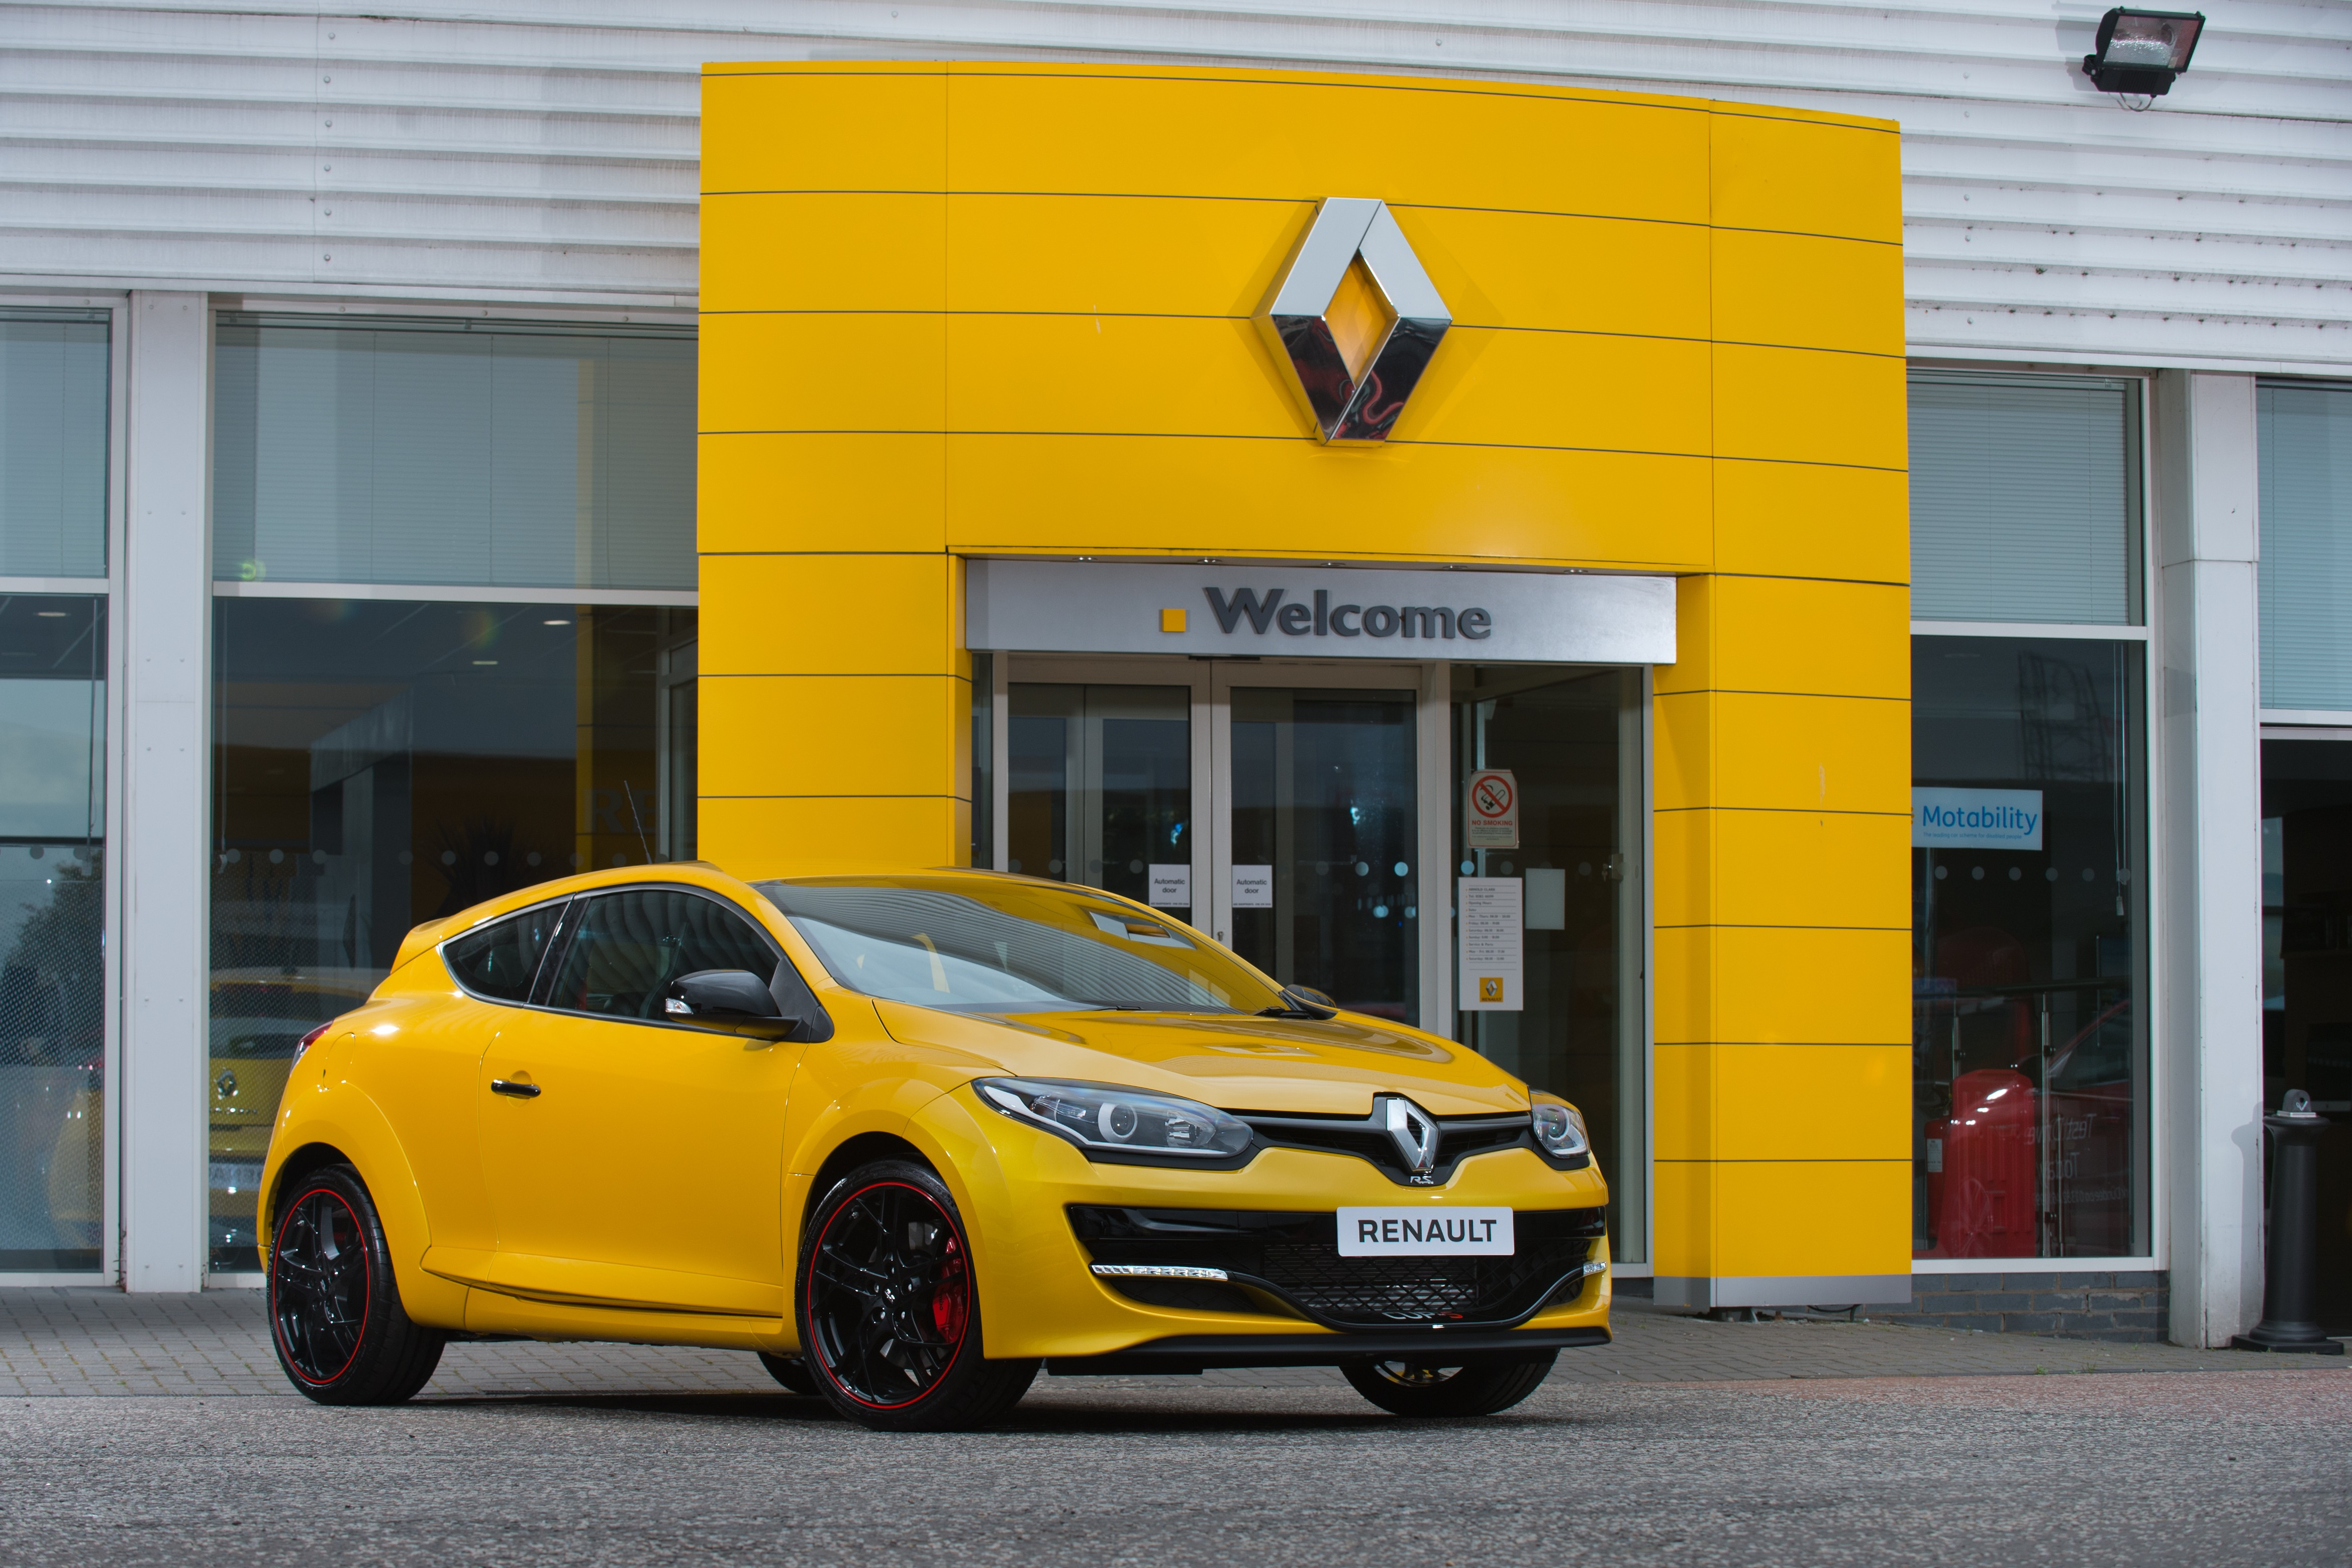 Final Third Generation Megane Rs On Sale In The Uk Priced At 31 930 Autoevolution